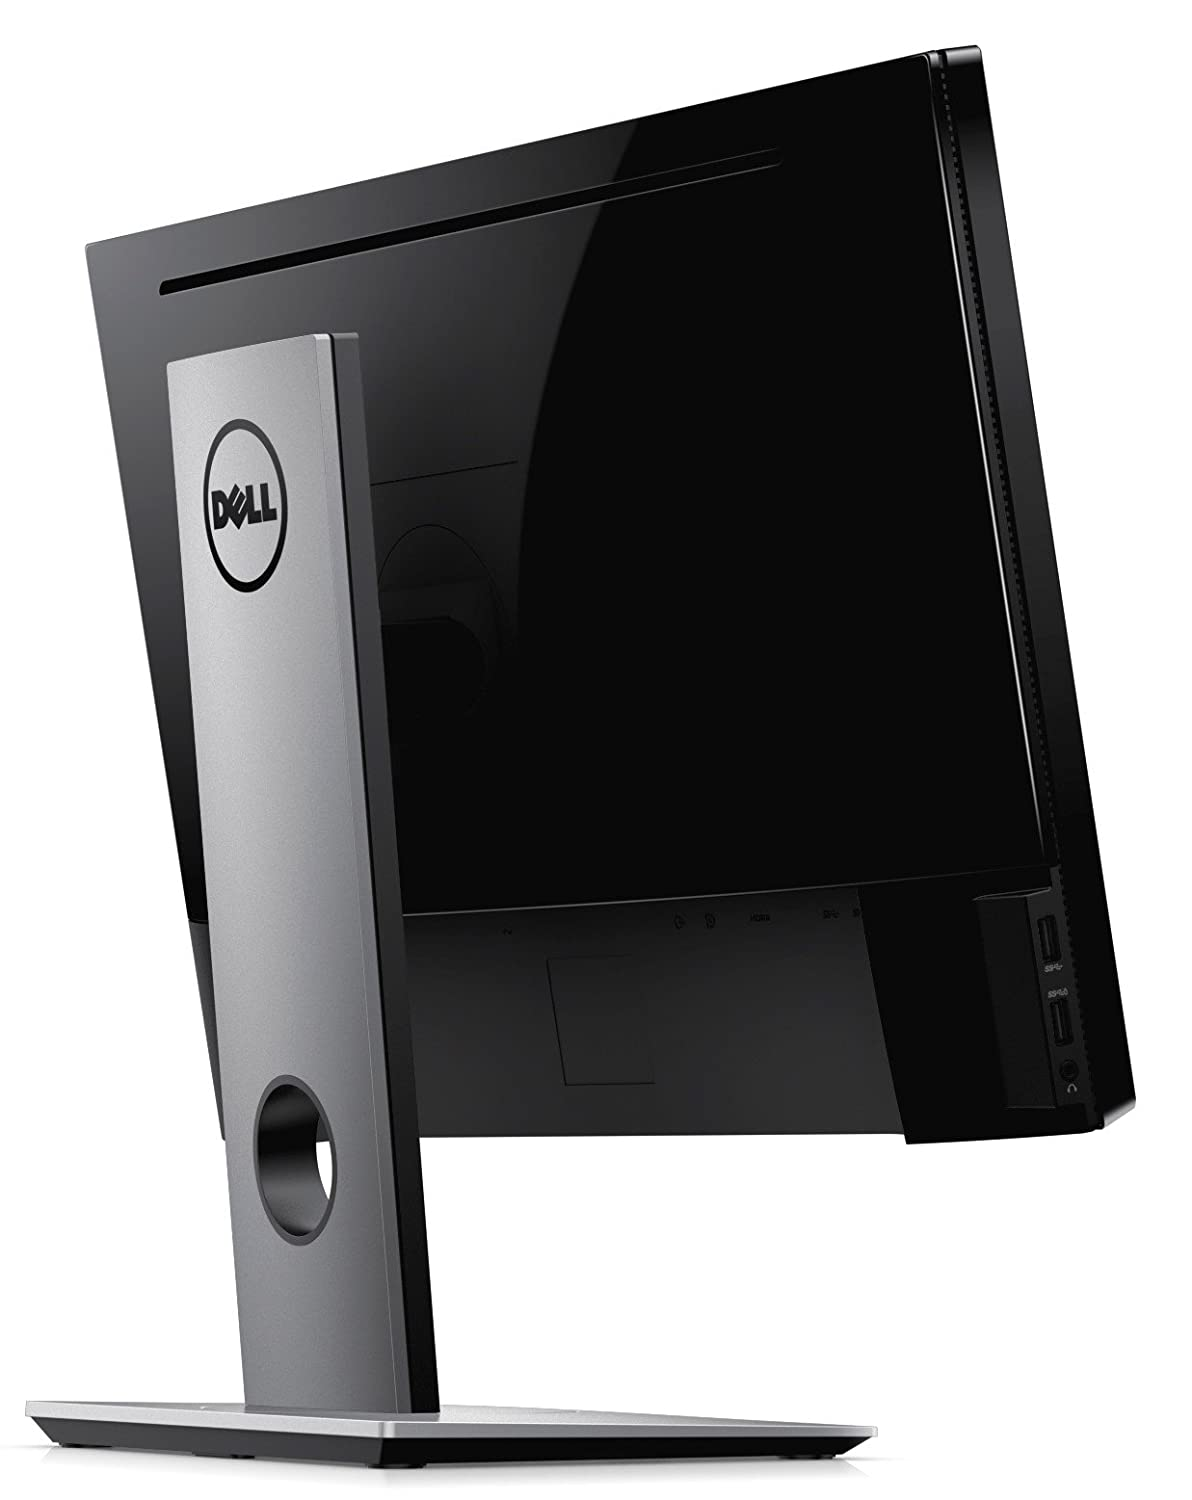 Black Dell S2716DG 27 Inch TN Anti-Glare LED-backlit LCD Gaming Monitor 1 ms Response Time, QHD 2560 x 1440 at 144 Hz, Nvidia G-Sync HDMI//DP//USB with Tilt and Swivel